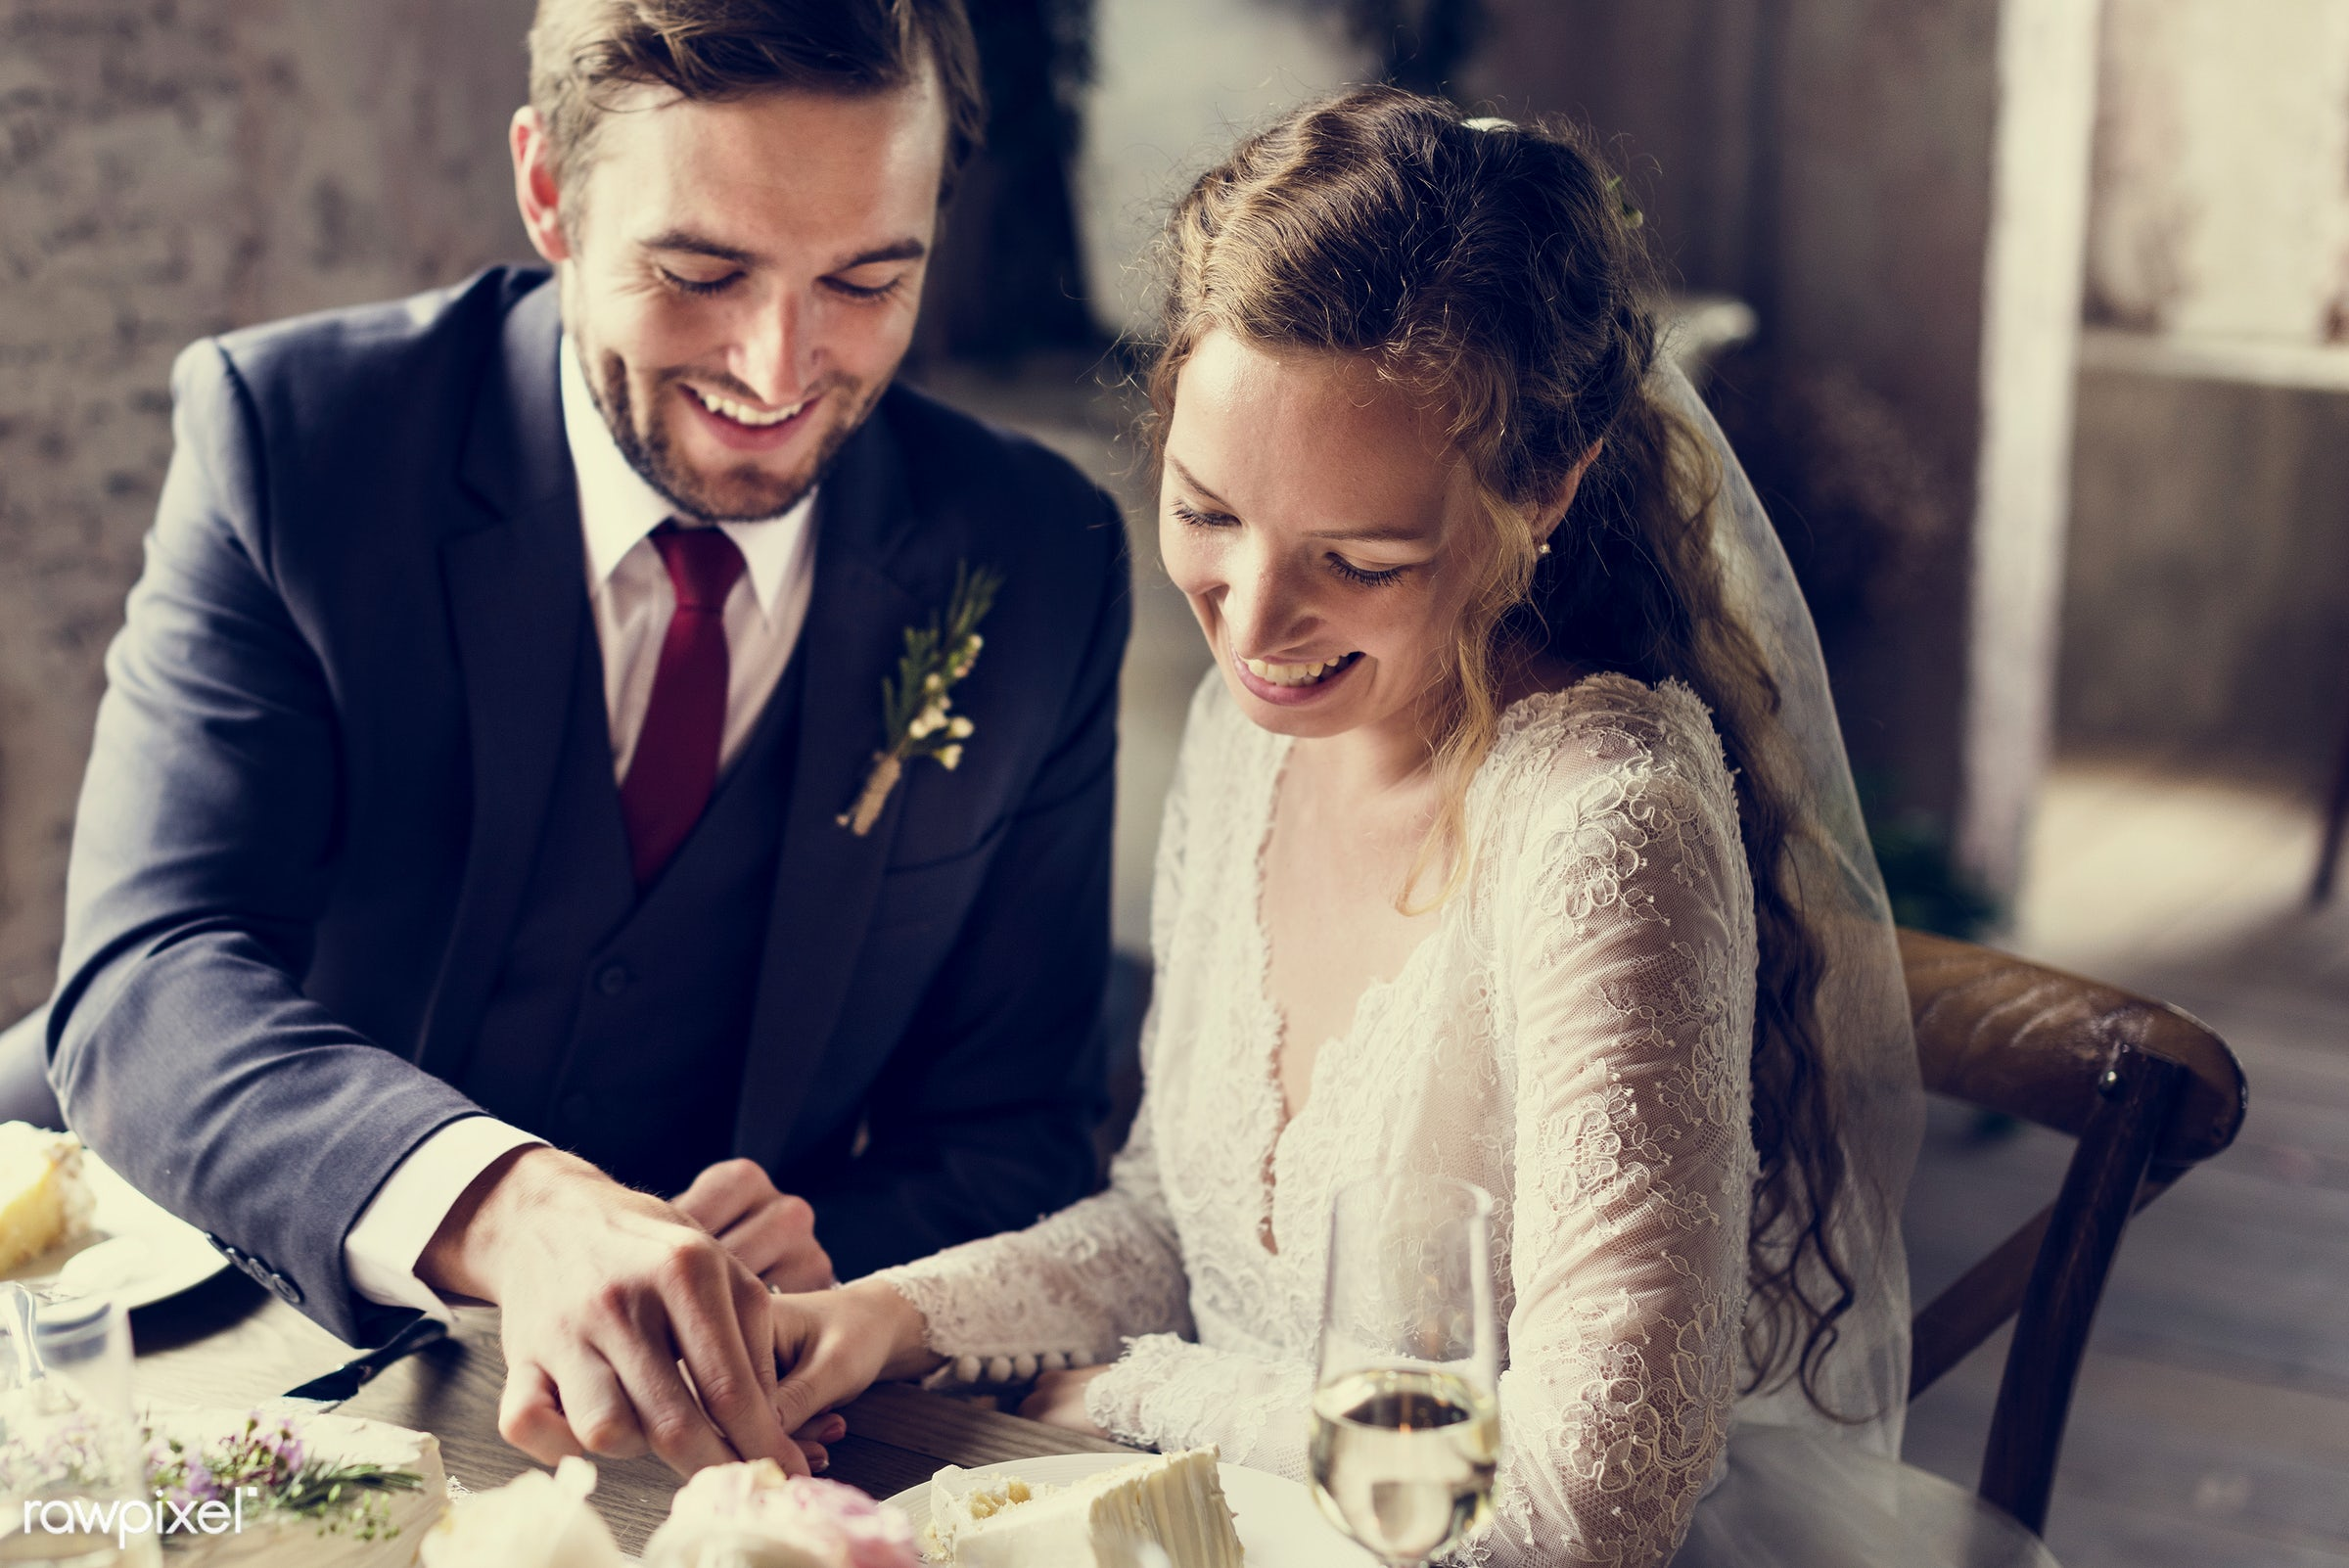 expression, person, smitten, people, together, love, friends, married, woman, family, event, gathering, flowers, cheerful,...